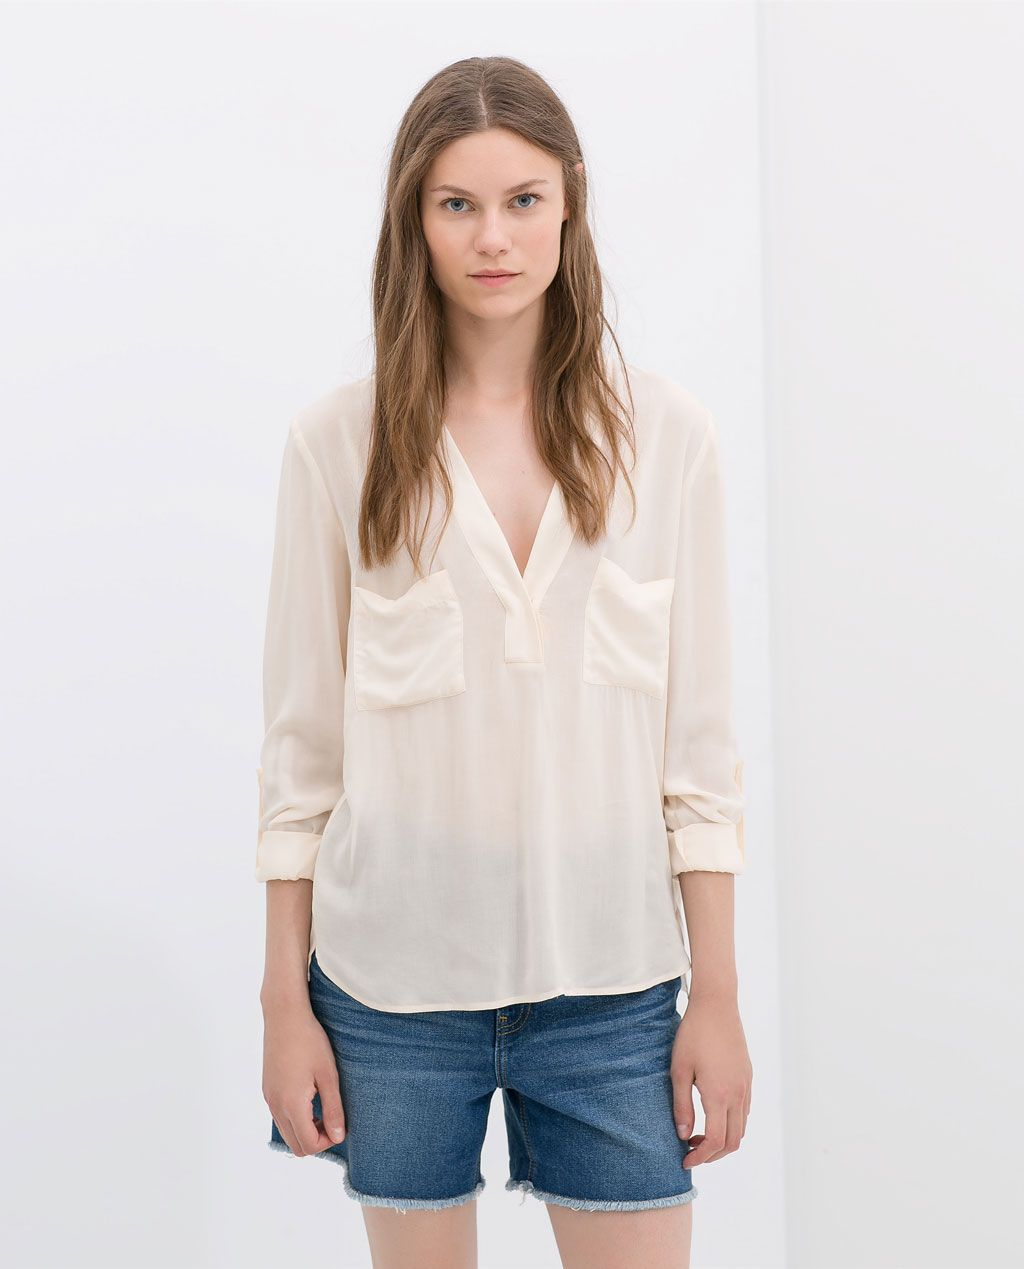 eaa67a73ac Image 1 of EMBELLISHED BLOUSE WITH V BACK from Zara | fashion ...